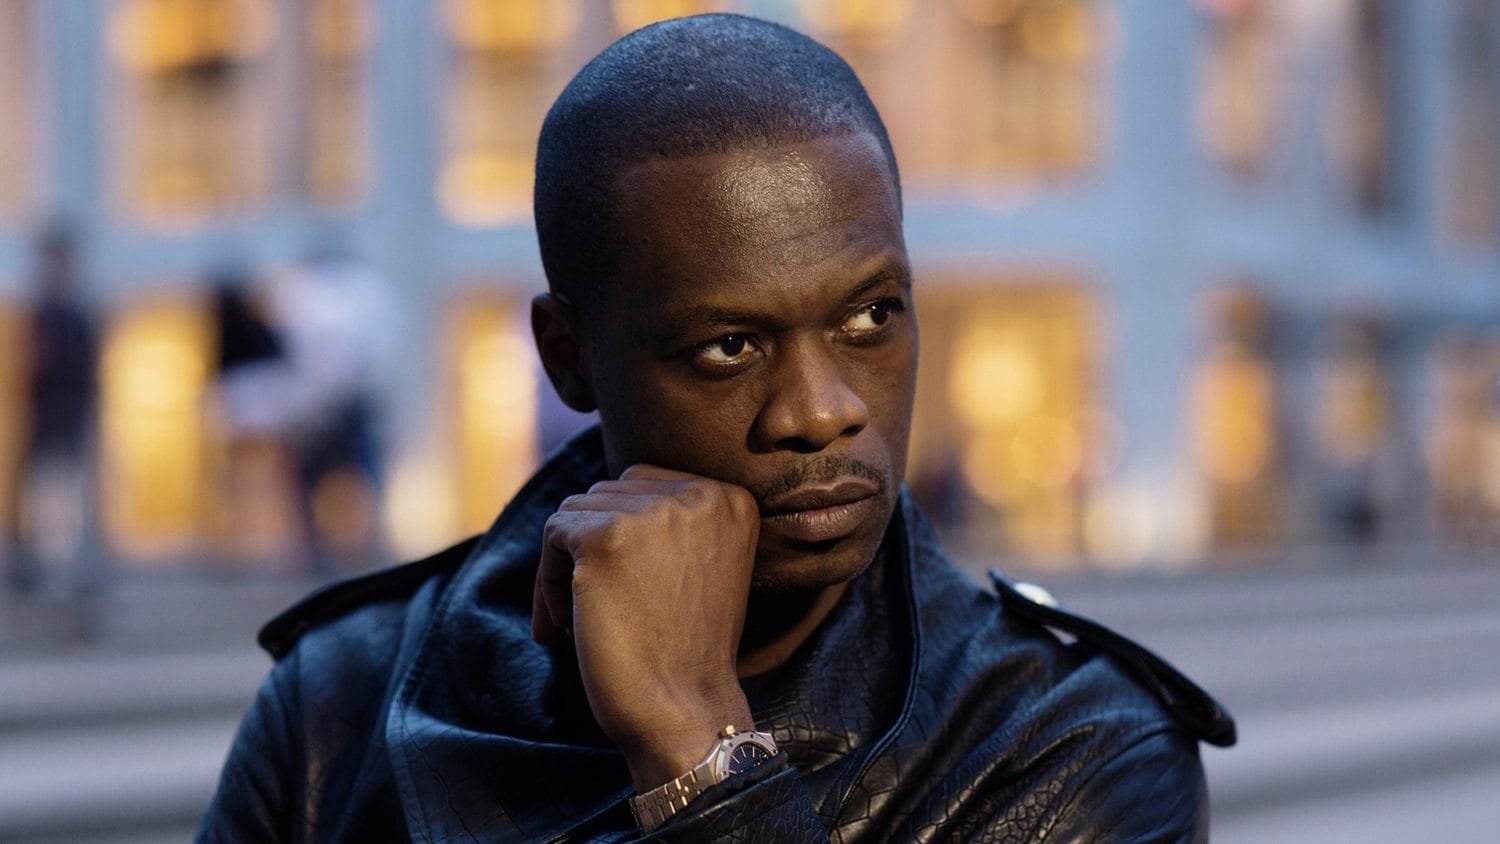 Pras Pleads Not Guilty To To Federal Conspiracy Charges